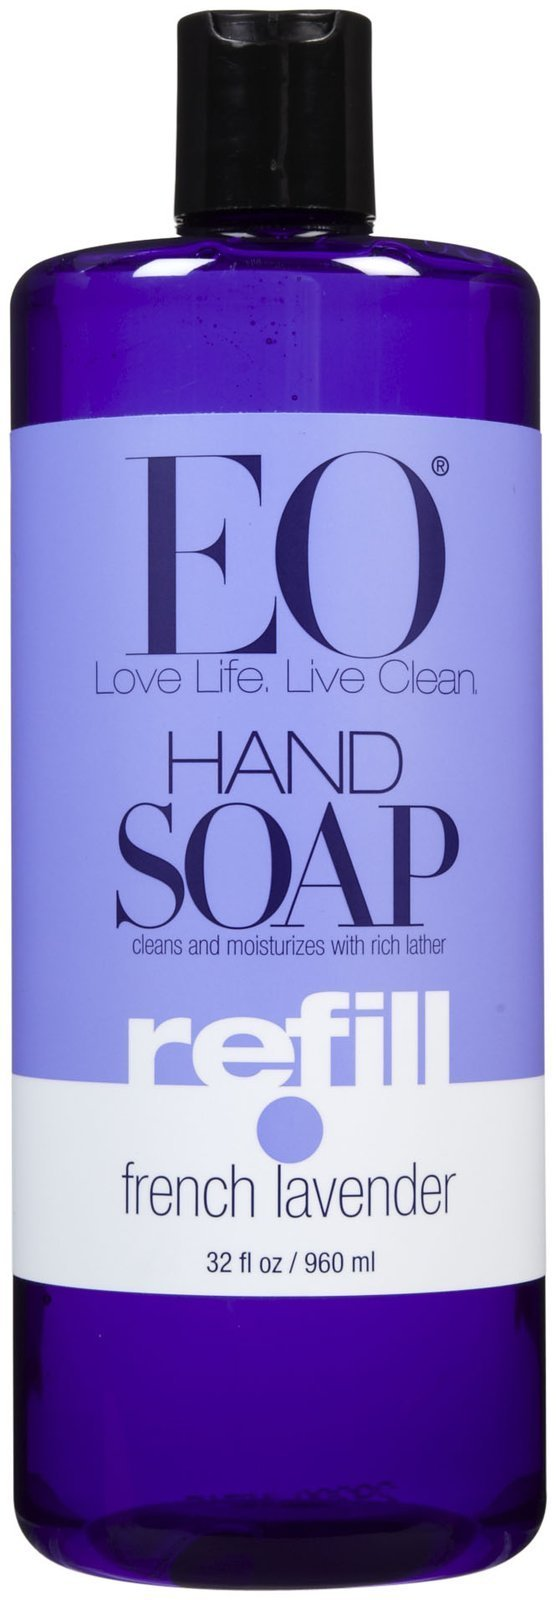 Liquid Hand Soap Refill-French Lavender-32, oz.